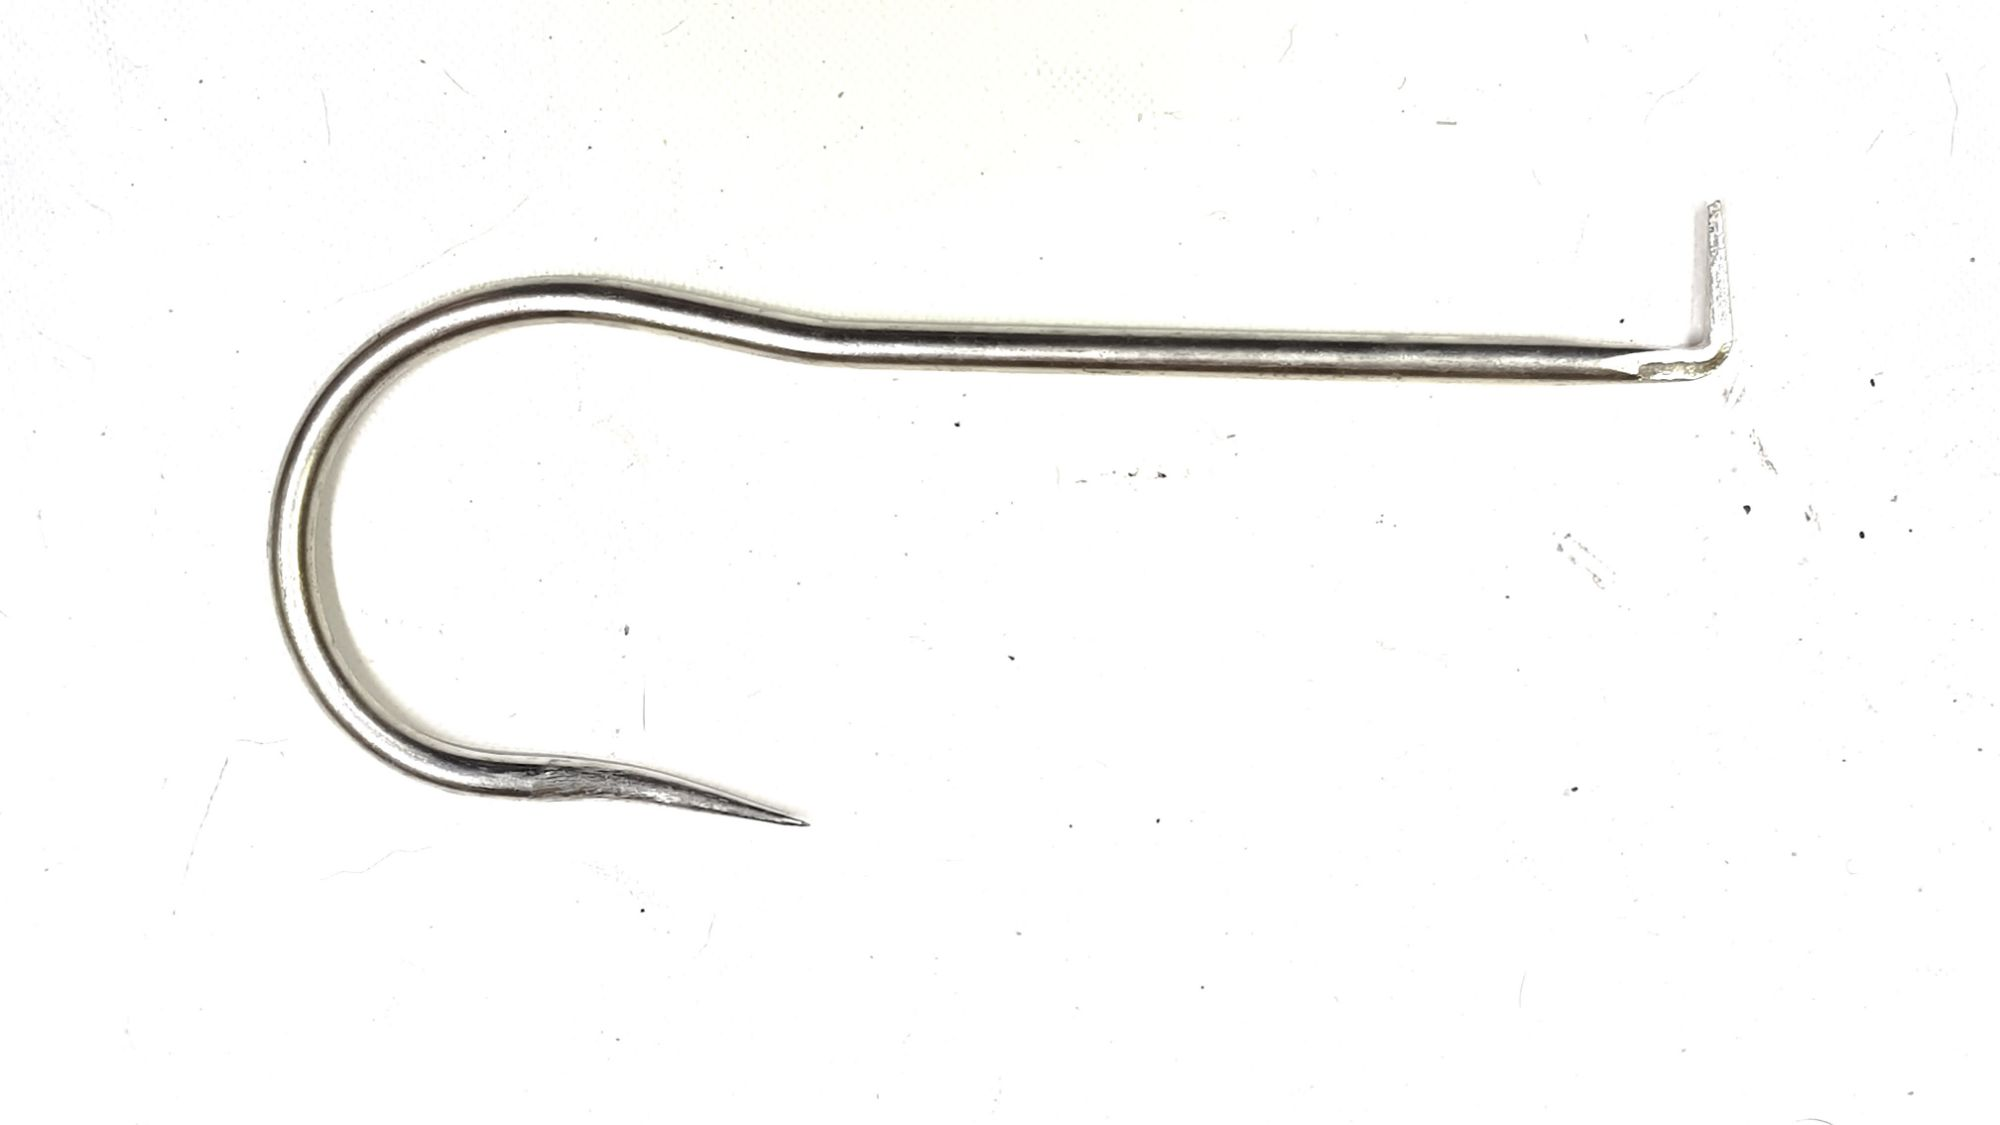 Gaff Hooks For Sale in Perth, Western Australia